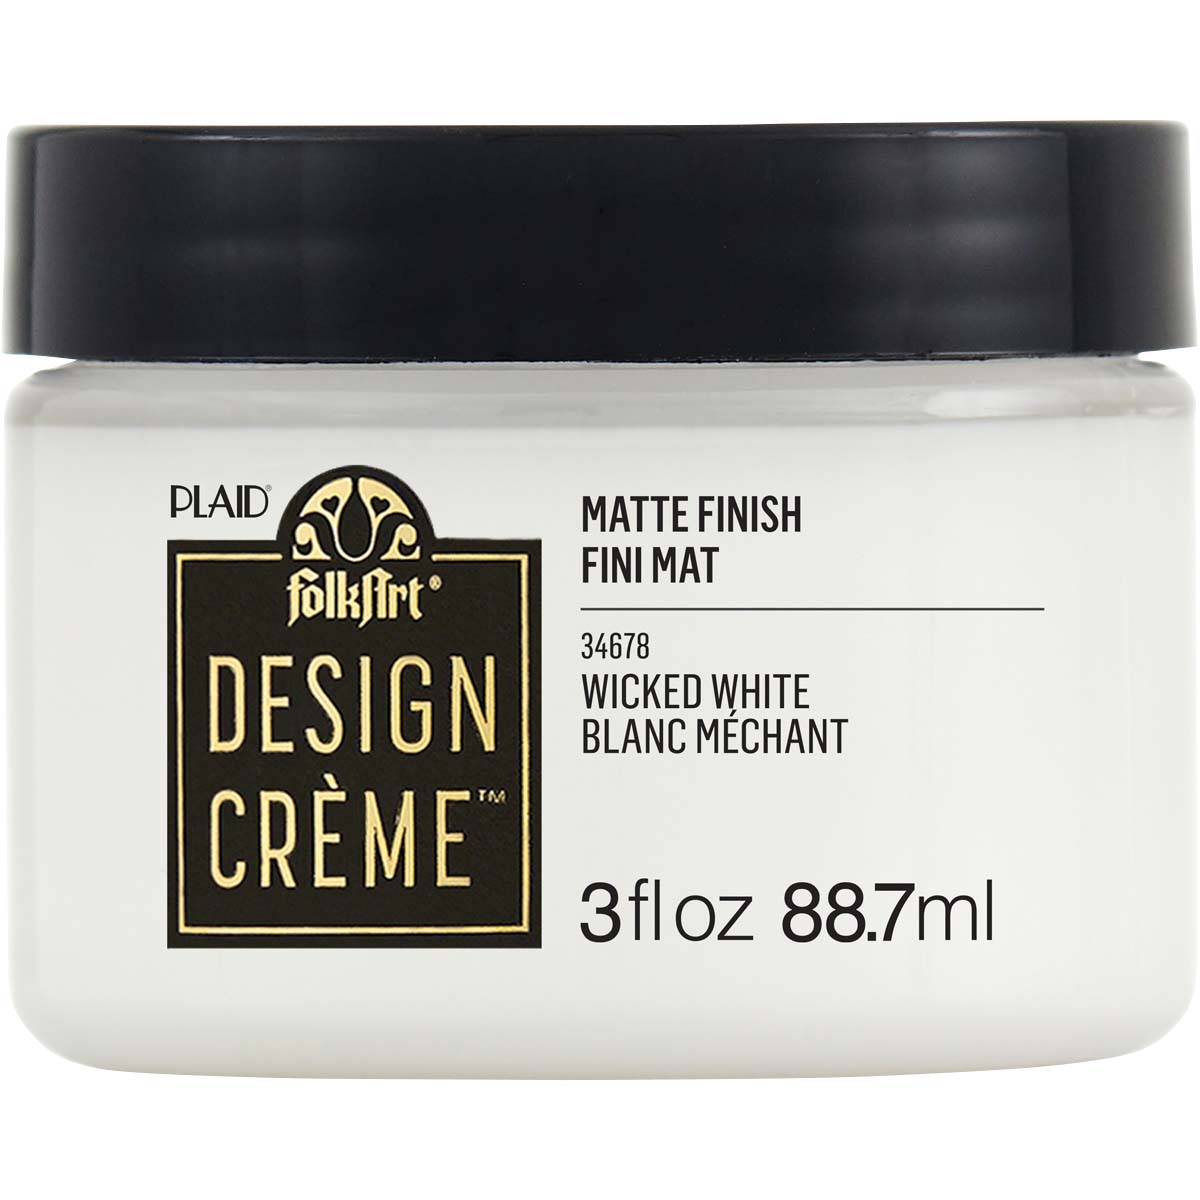 FolkArt ® Design Creme™ - Wicked White, 3 oz. - 34678